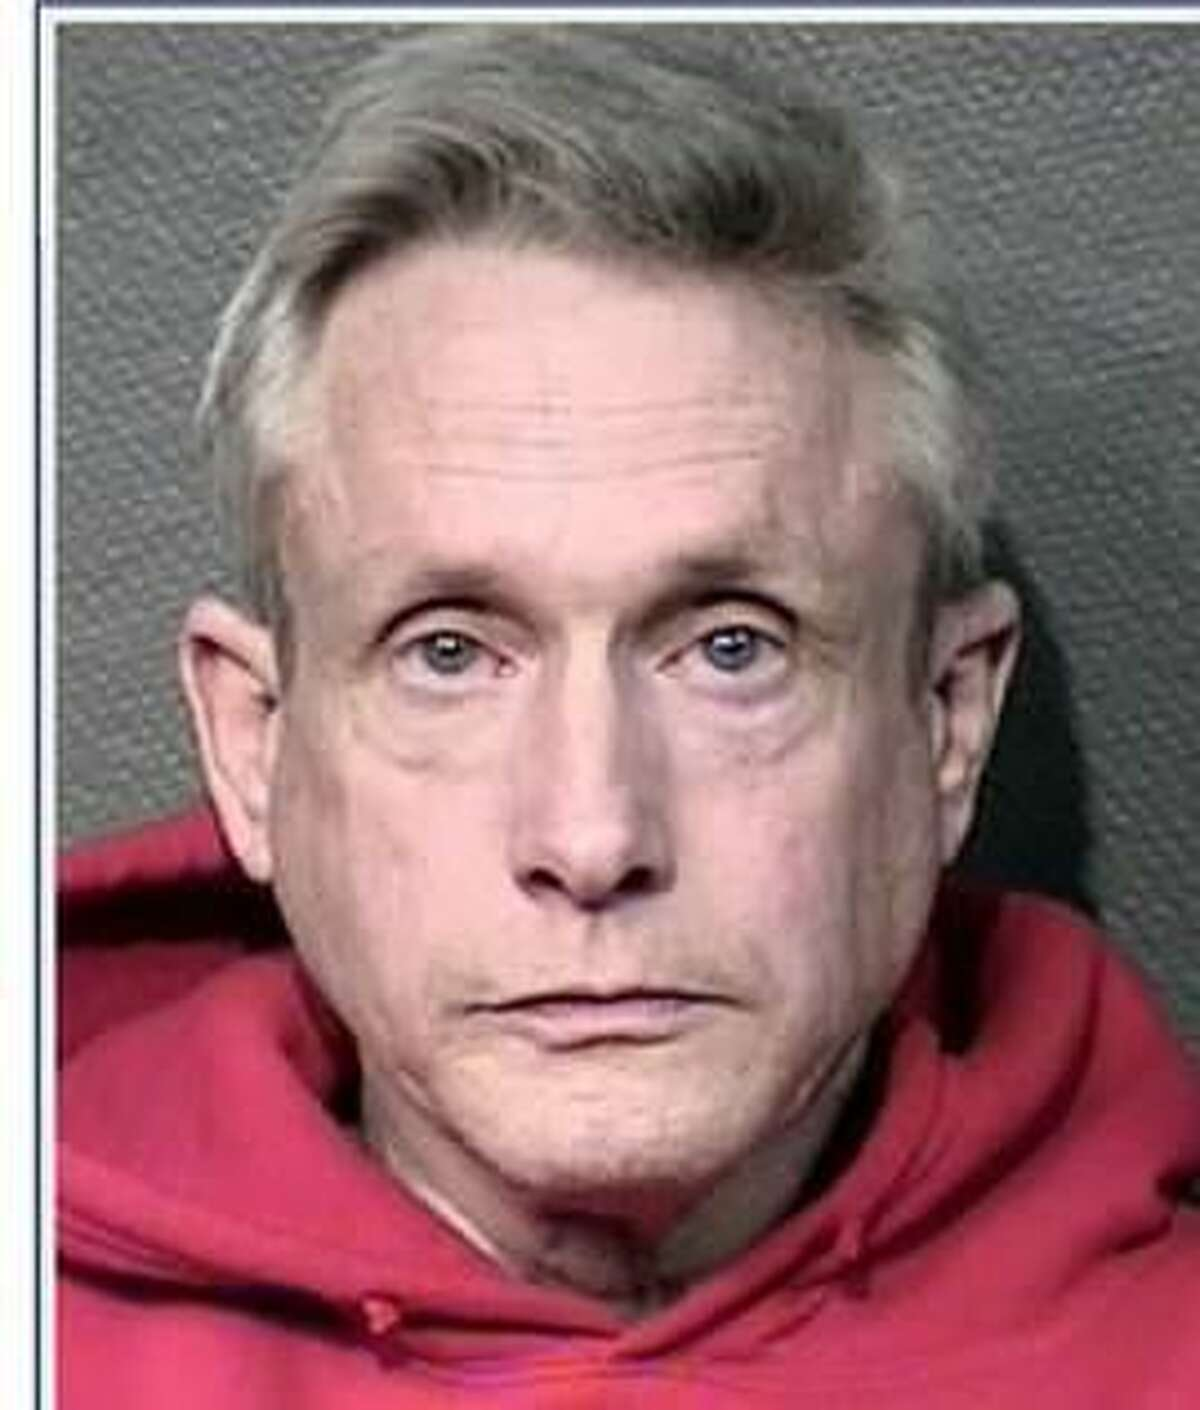 Robin Chiswell is charged with felony stalking.